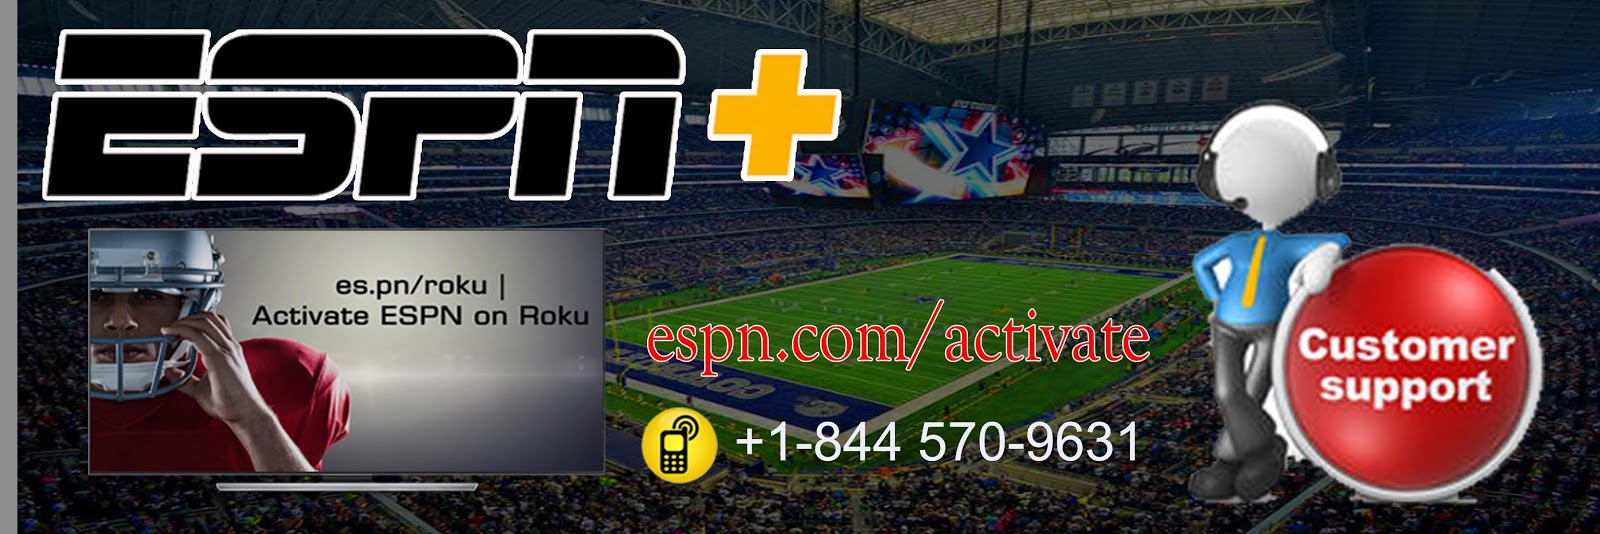 How To Activate Espn Channel On Roku | espn activate image 1